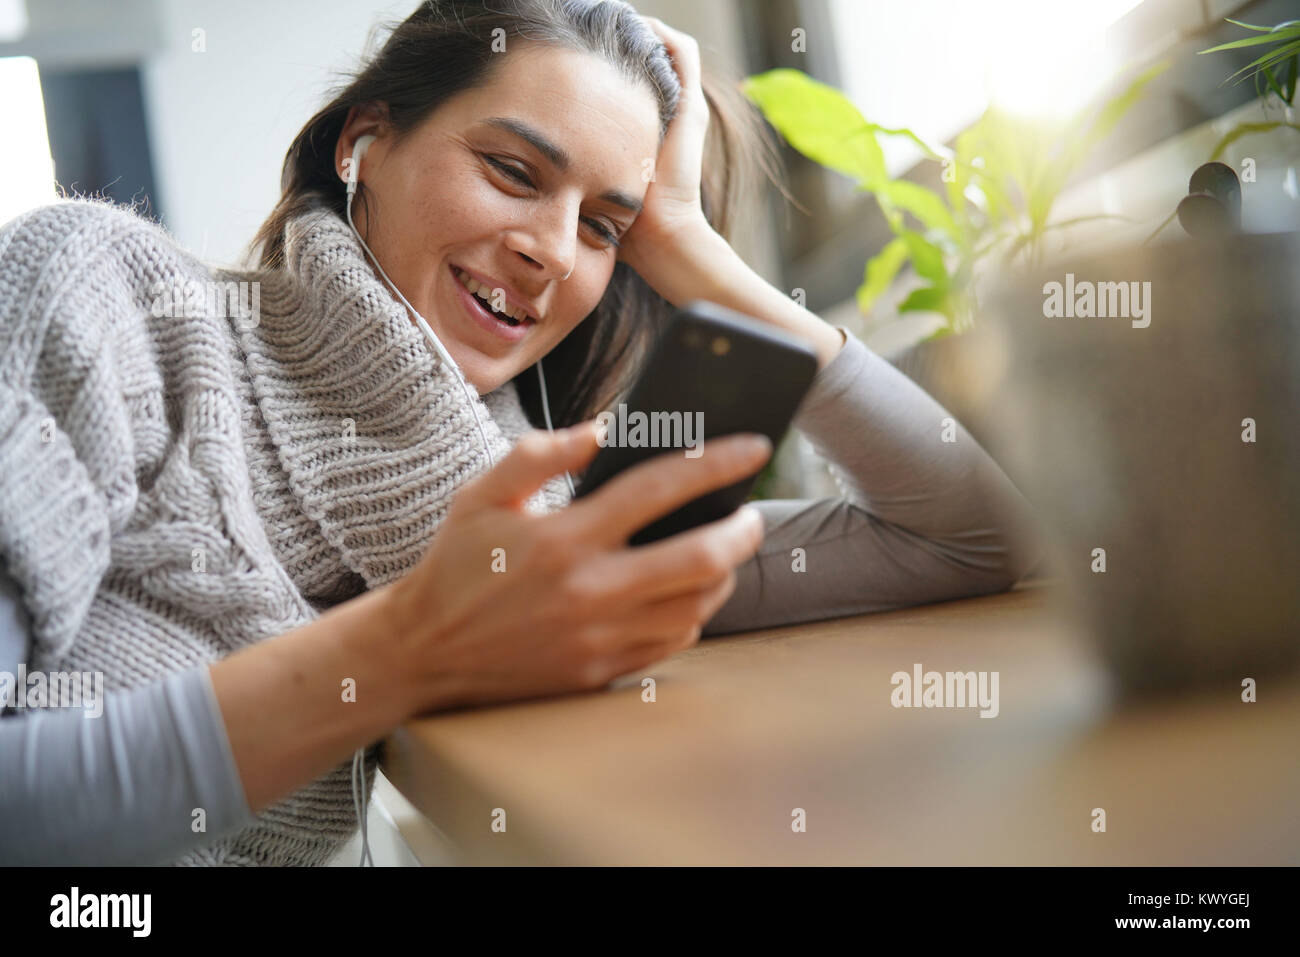 Brunette Woman Long Hair 40 Years Old Stock Photos Brunette Woman